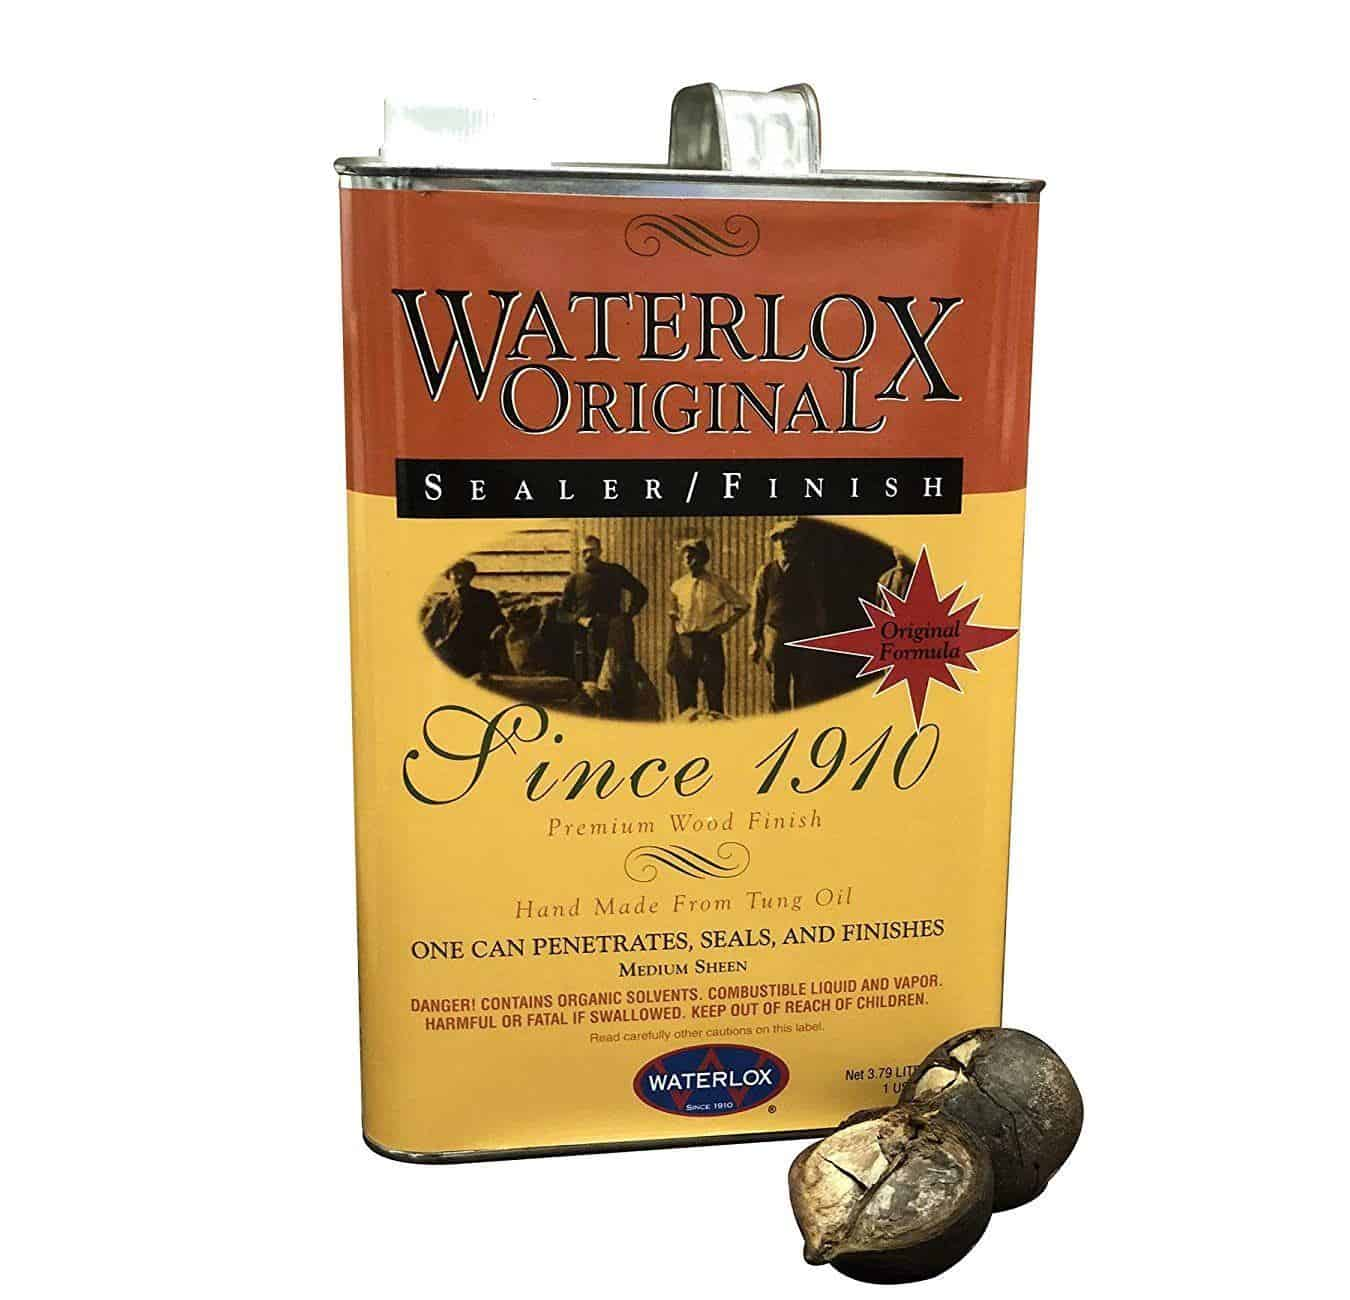 Waterlox Original Sealer Finish